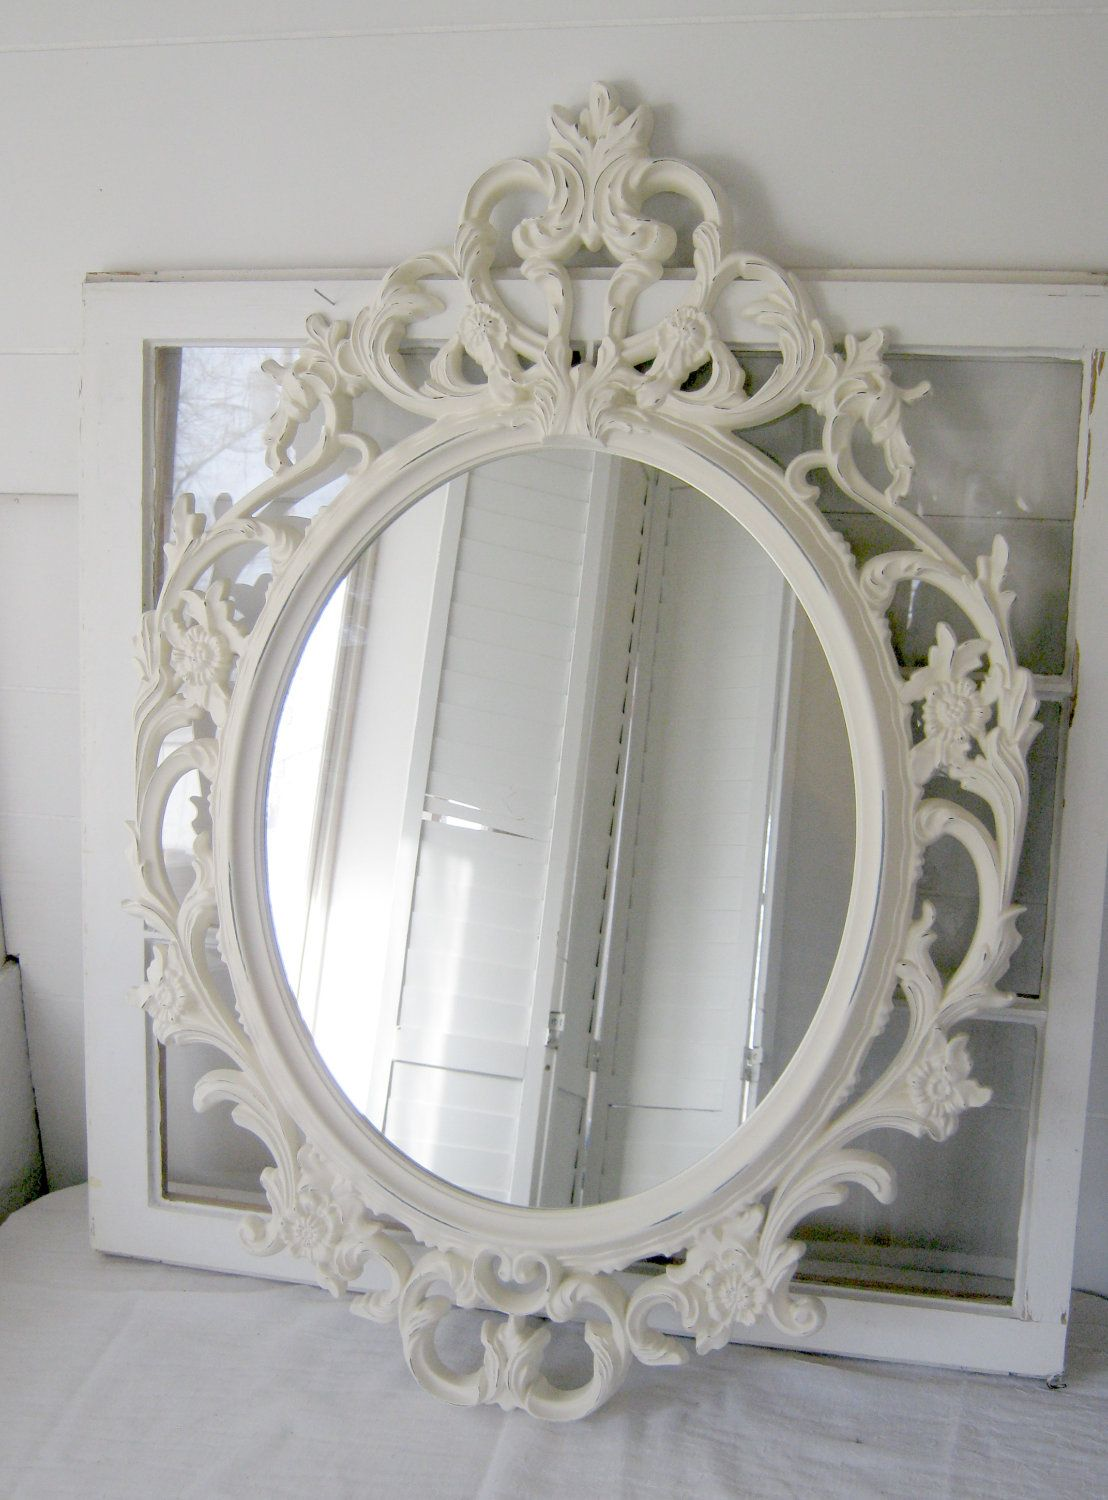 shabby chic baroque oval mirror antique white ornate mirror home decor wedding - Baroque Home Decor